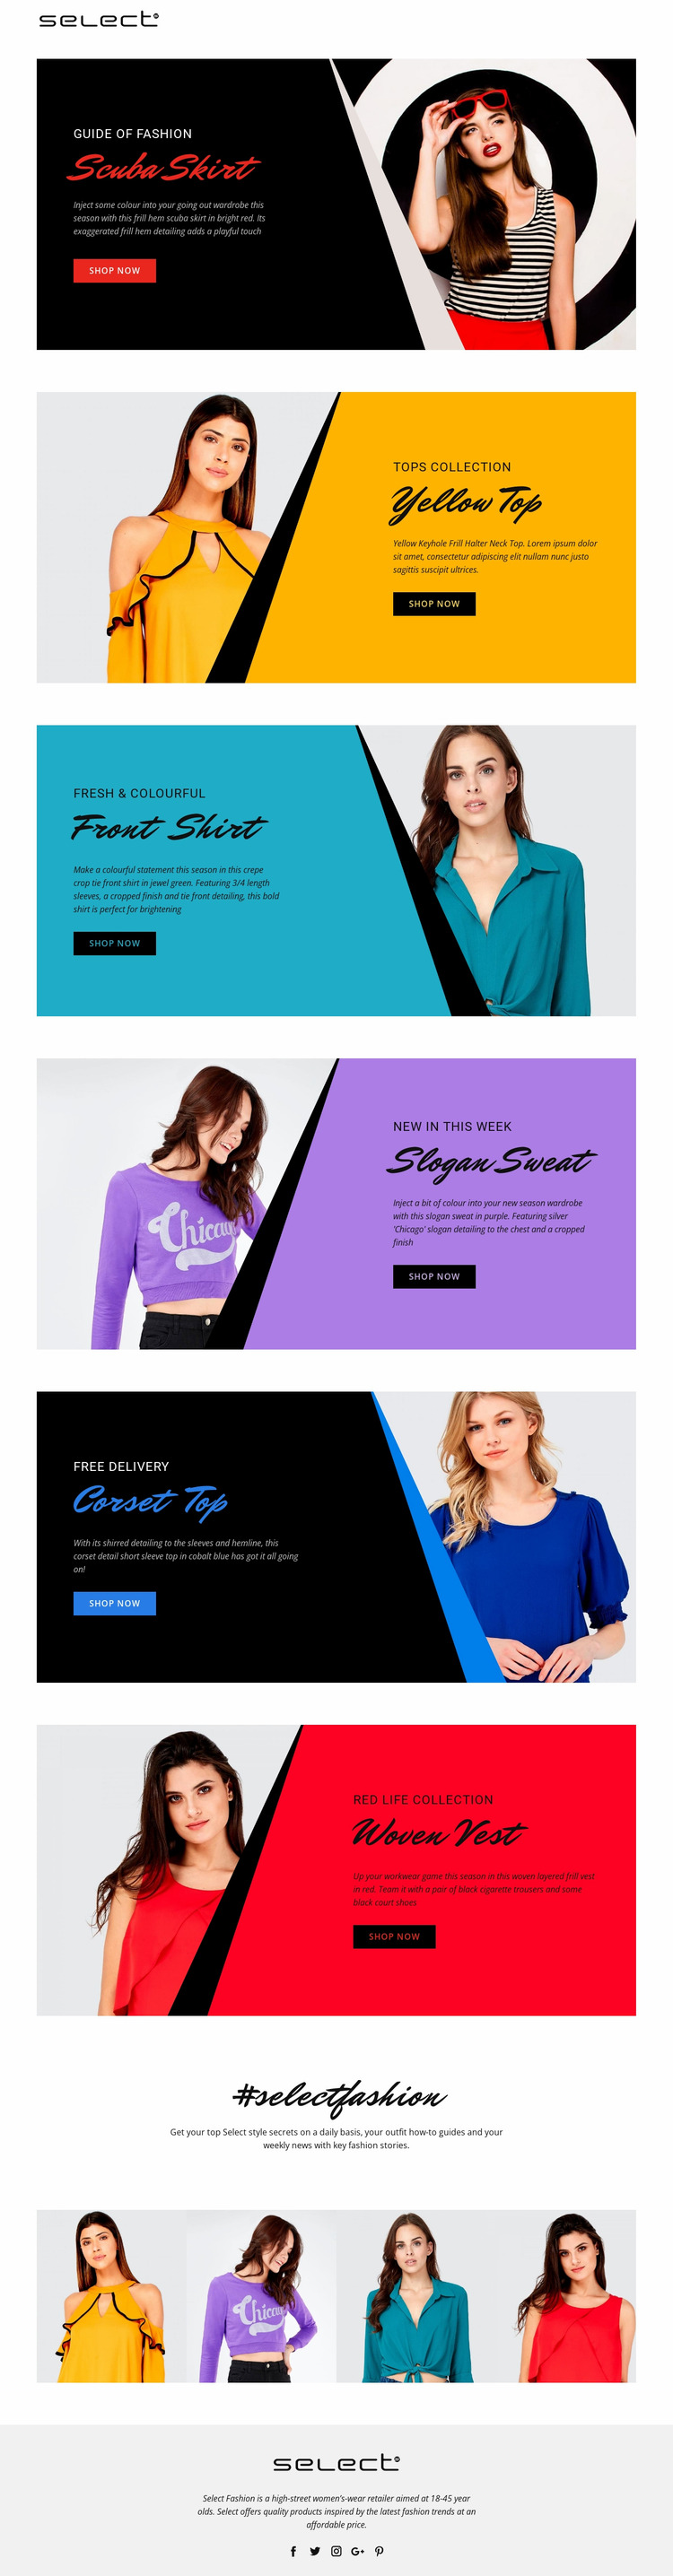 Learn about dress codes Website Mockup